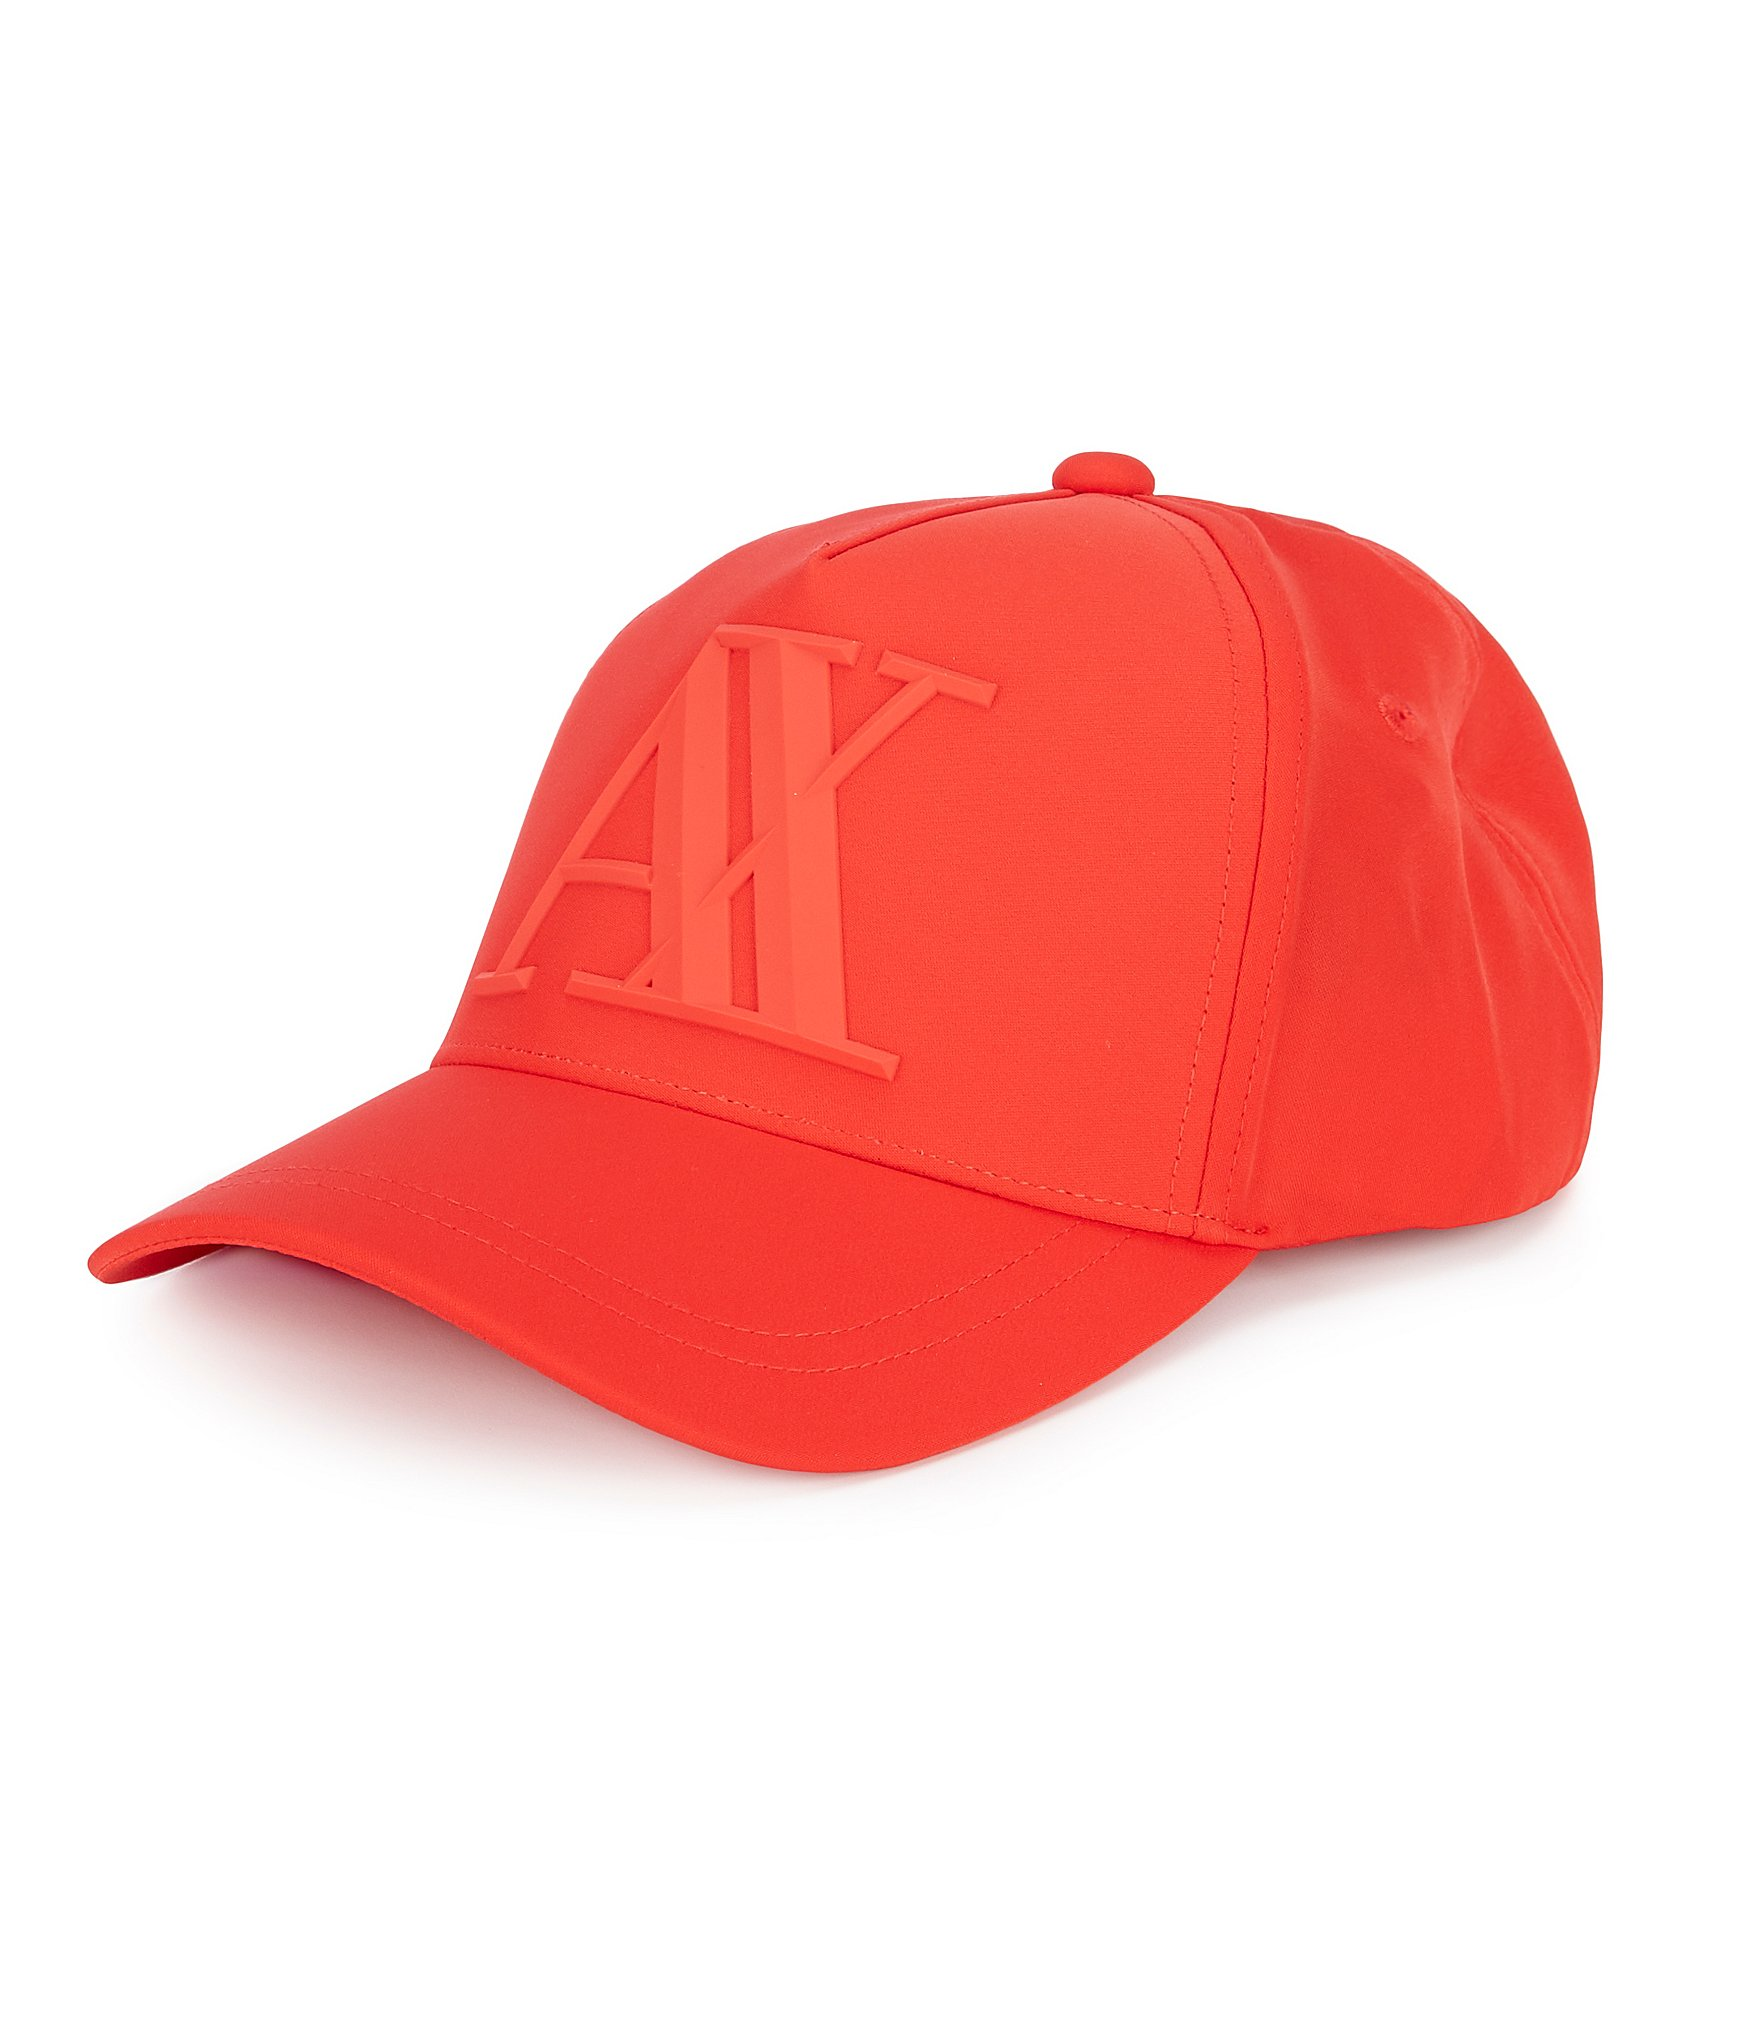 144df6cc5 Armani Exchange Core Rubber Logo Baseball Cap | Dillard's